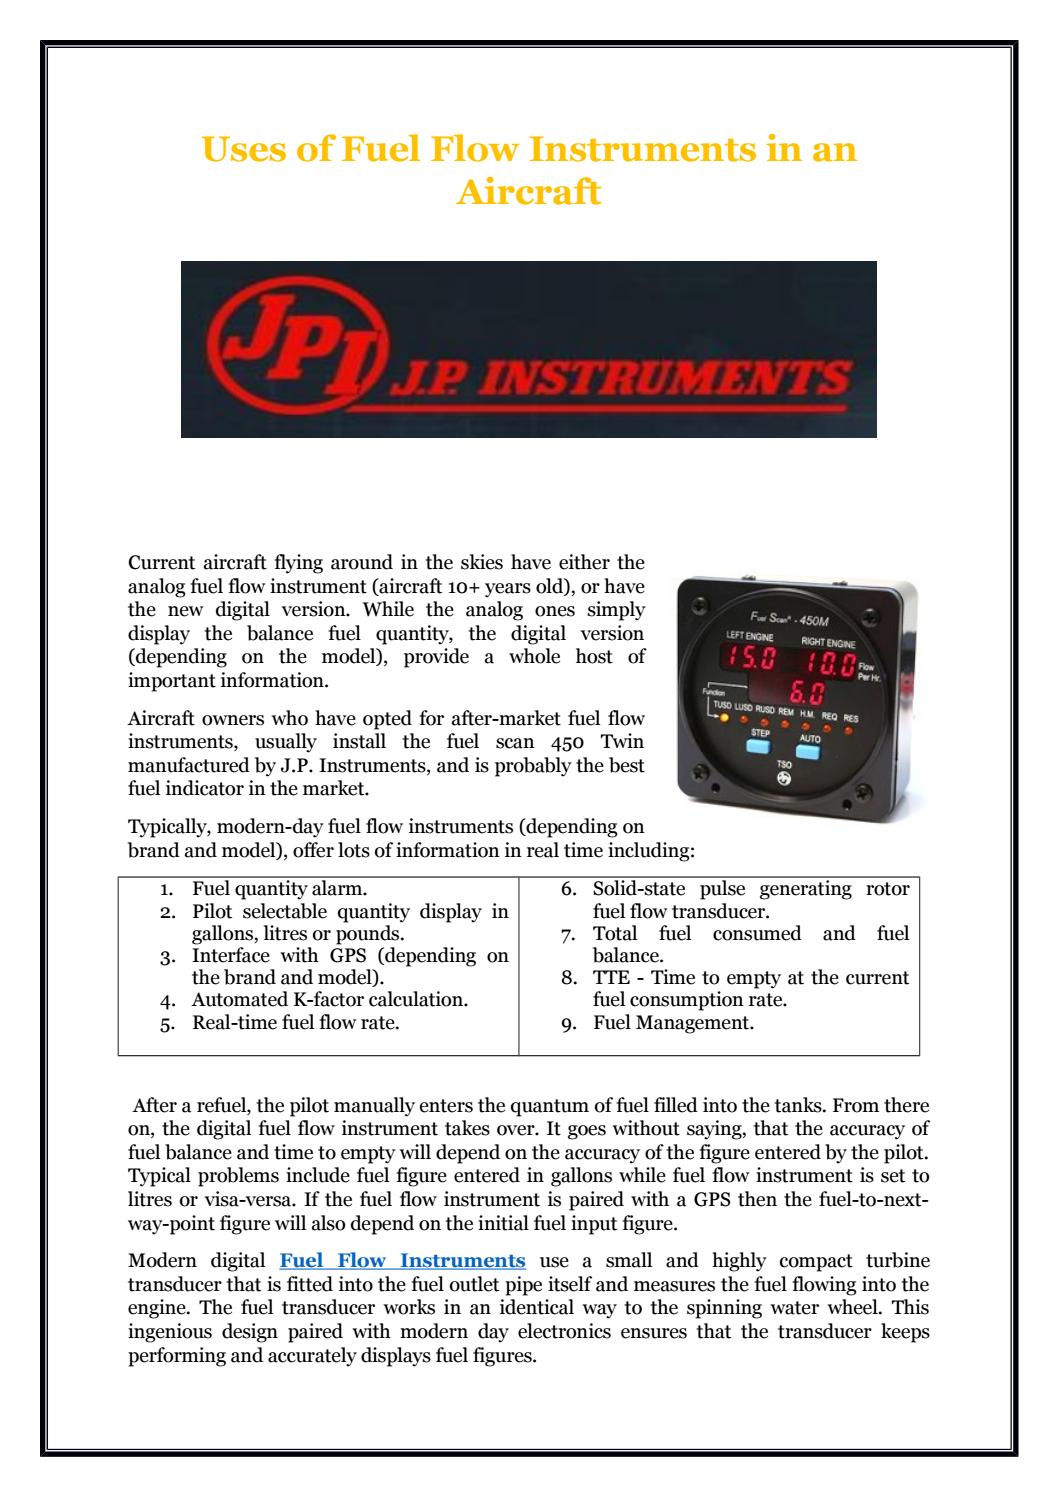 Uses of Fuel Flow Instruments in an Aircraft by J P